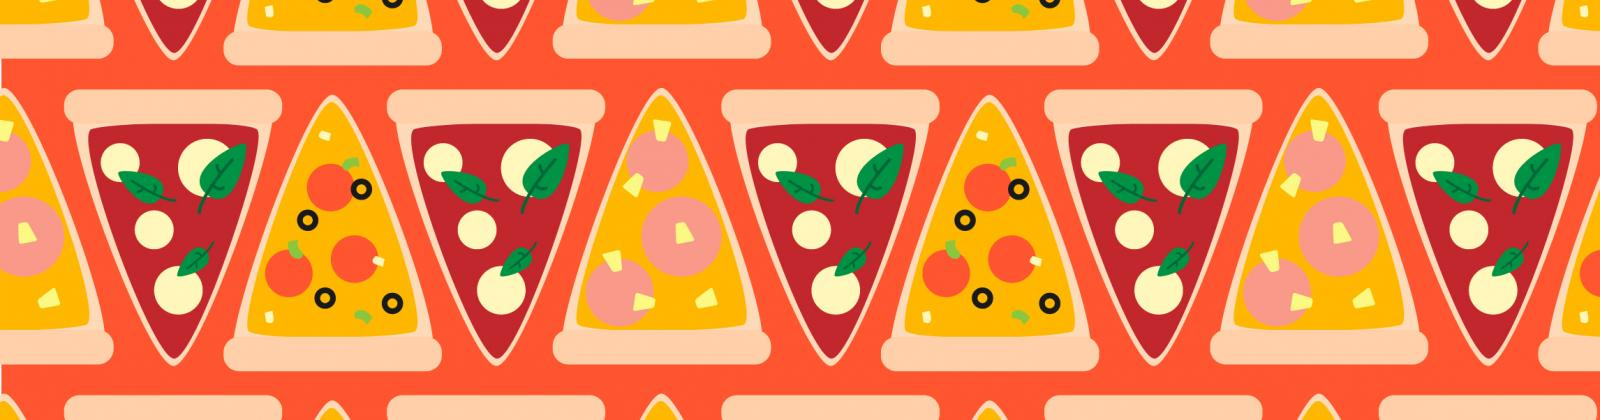 illustrated pizza